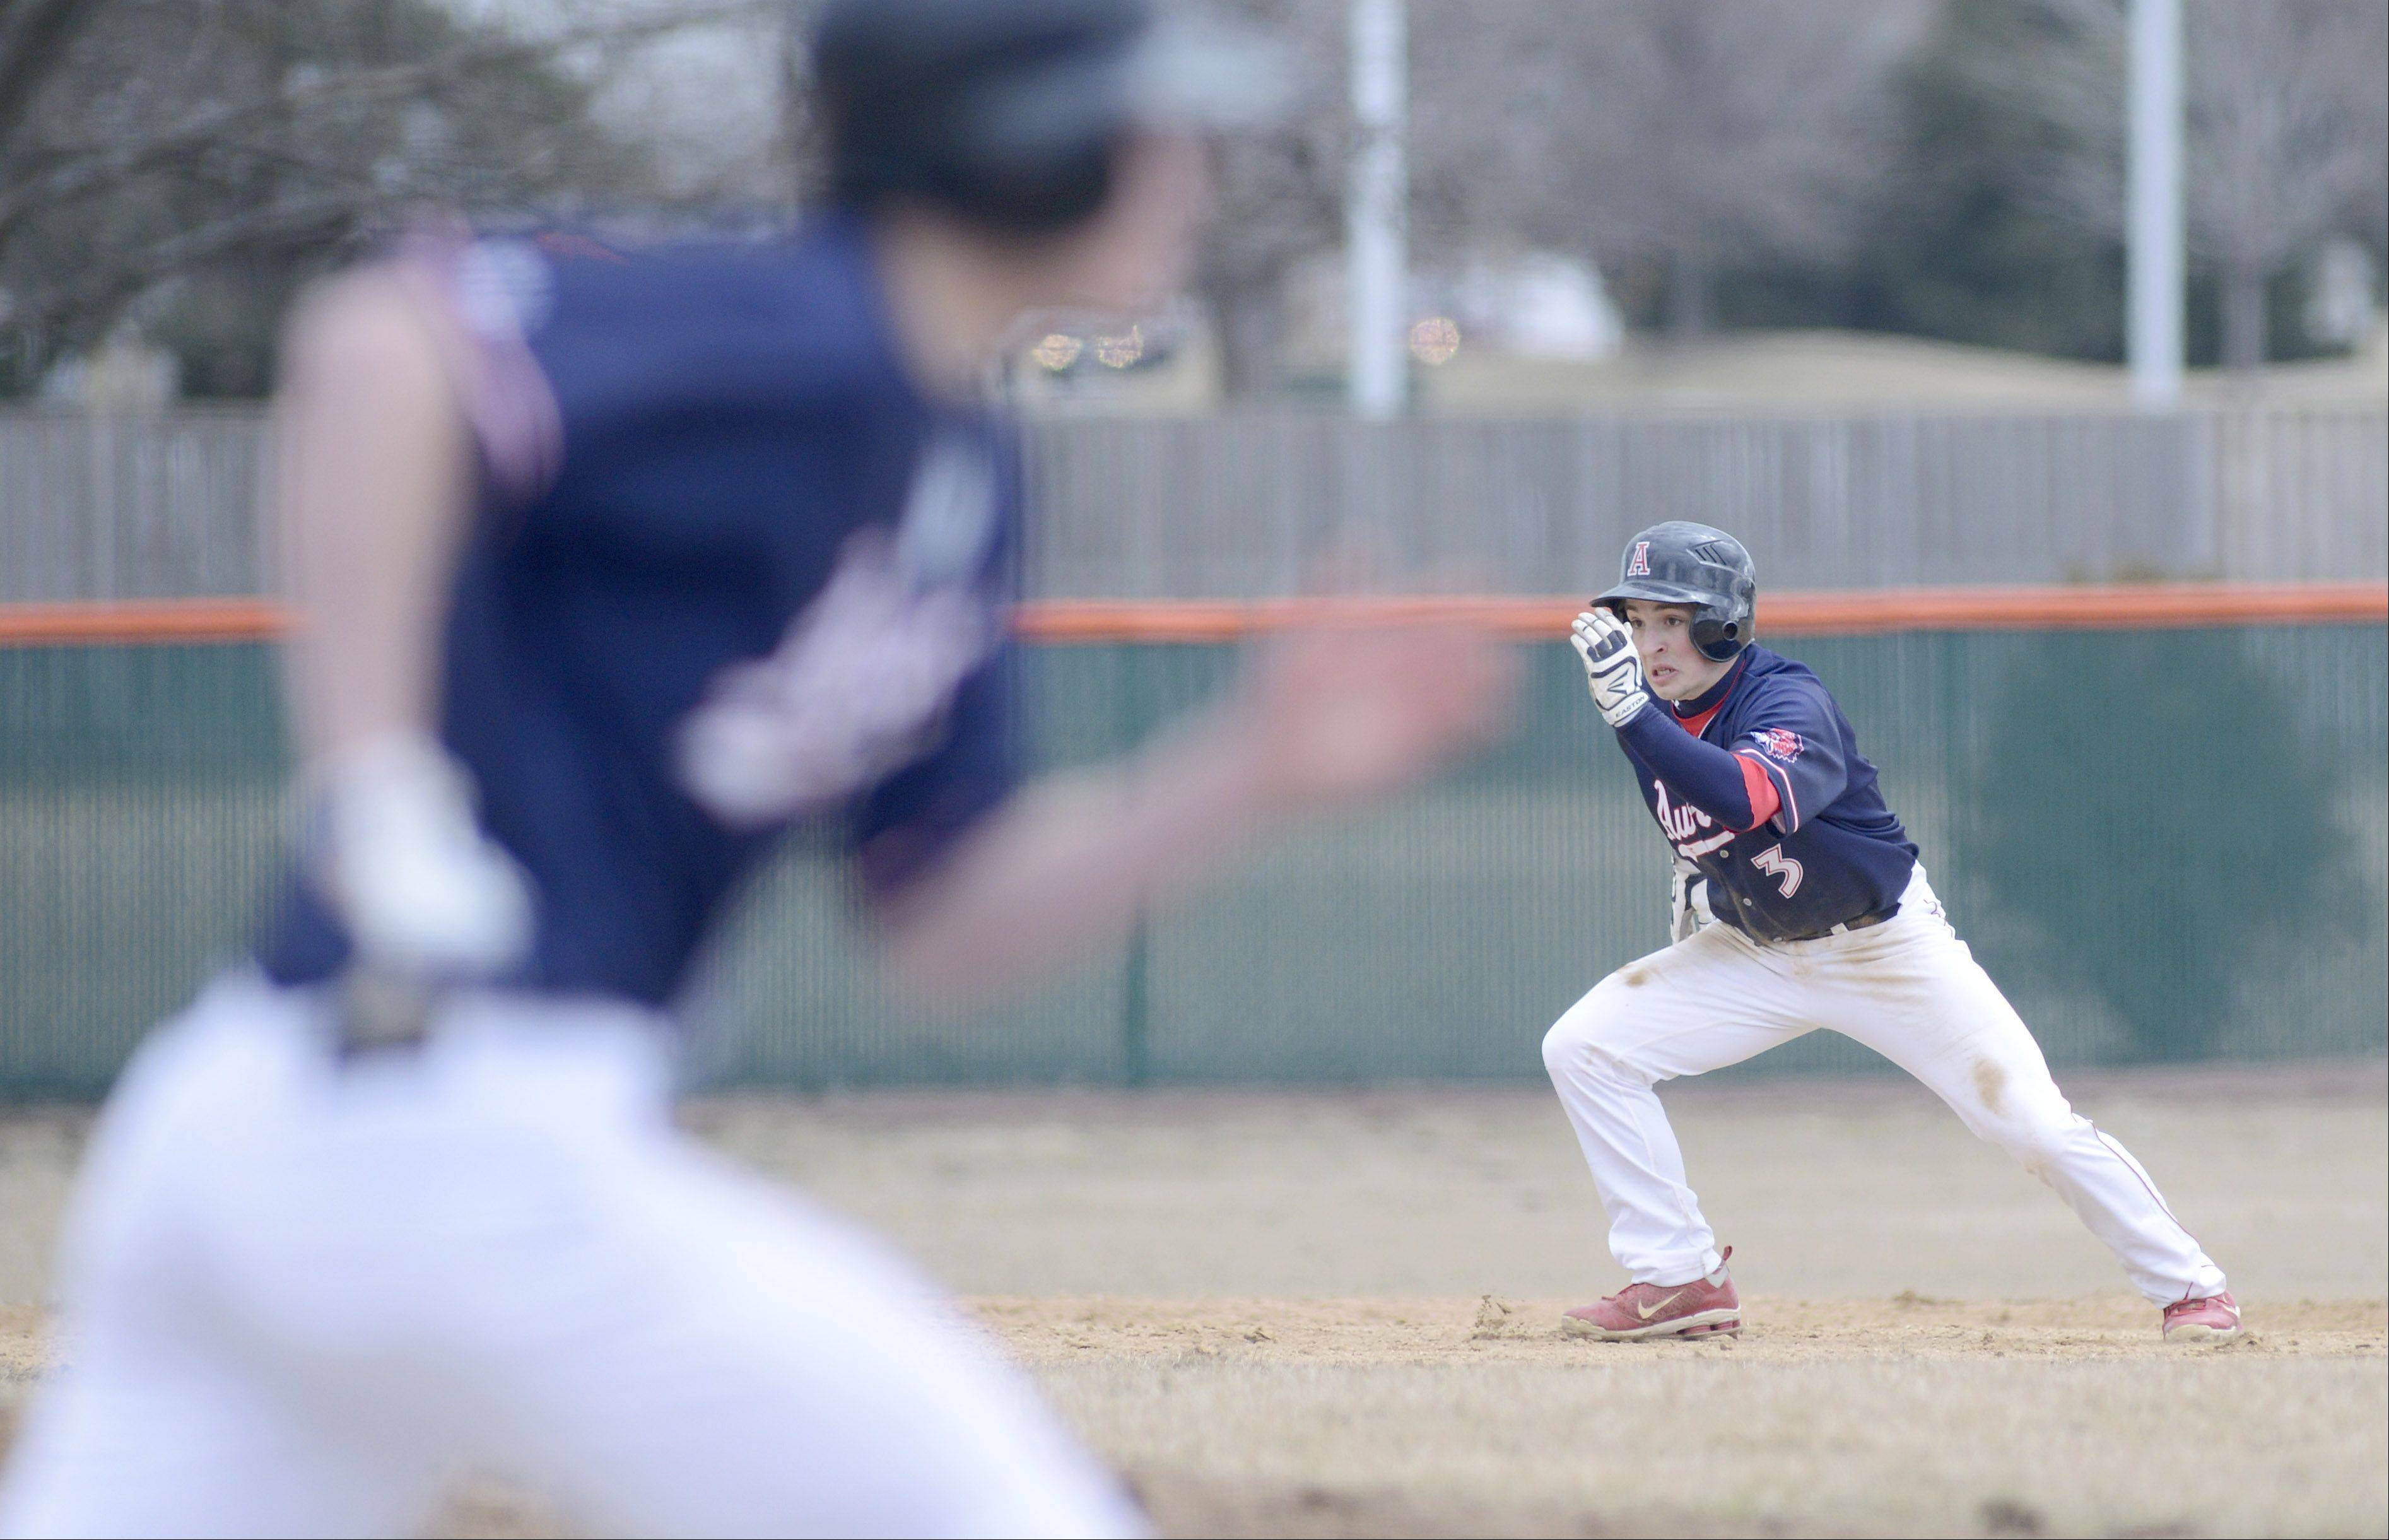 West Aurora�s Adam Lipscomb races for third base in the third inning vs. St. Charles East on Tuesday, March 26.